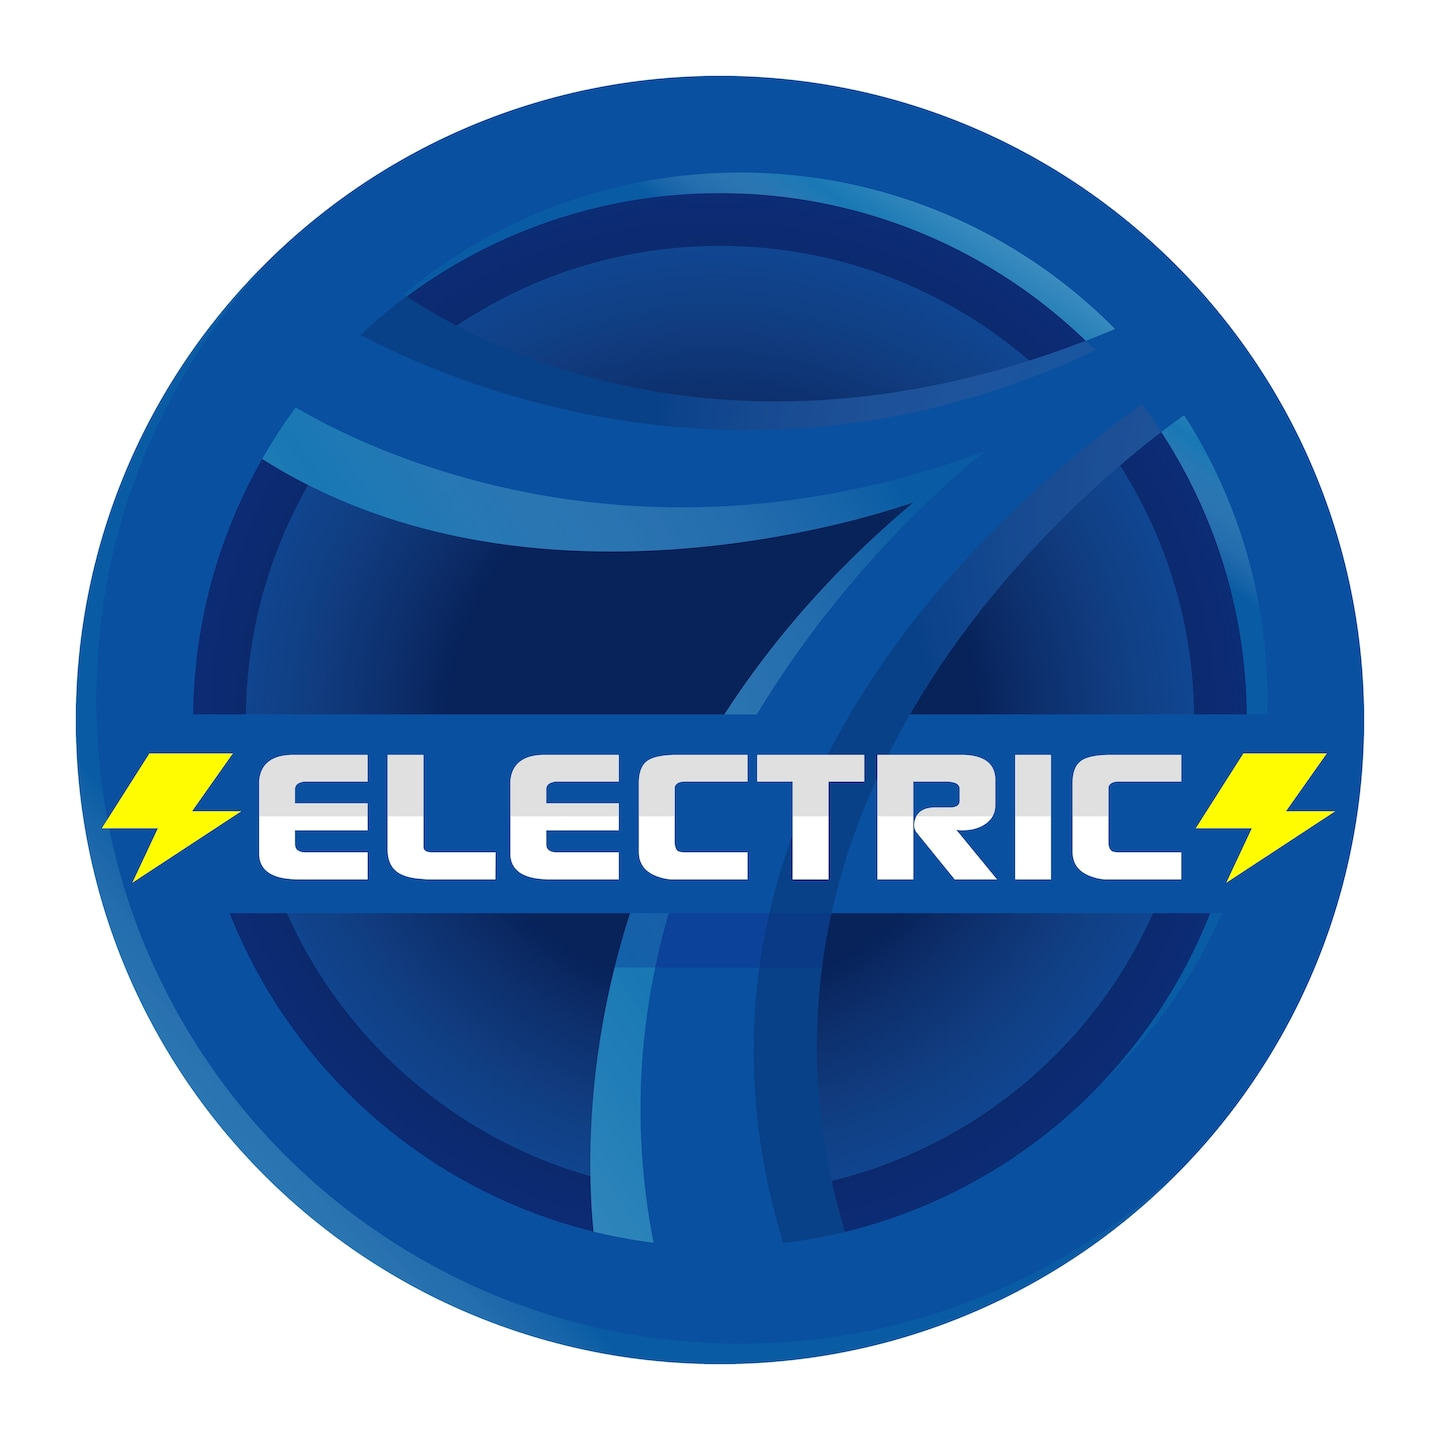 Seven Electric